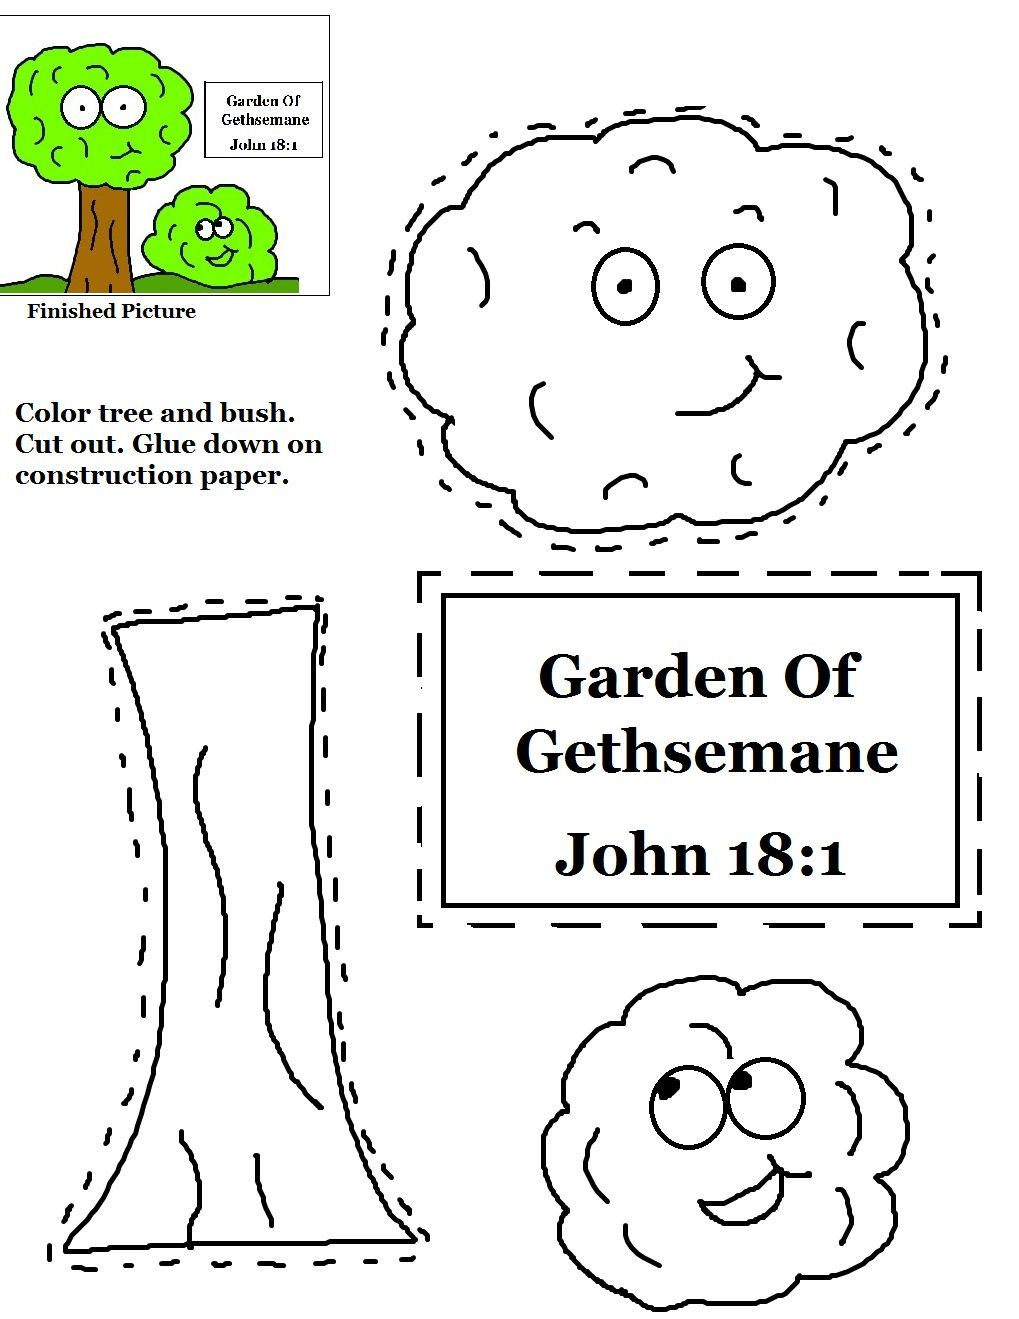 Garden pictures for kids to color - Garden Of Gethsemane Cutout Activity Sheet For Kids